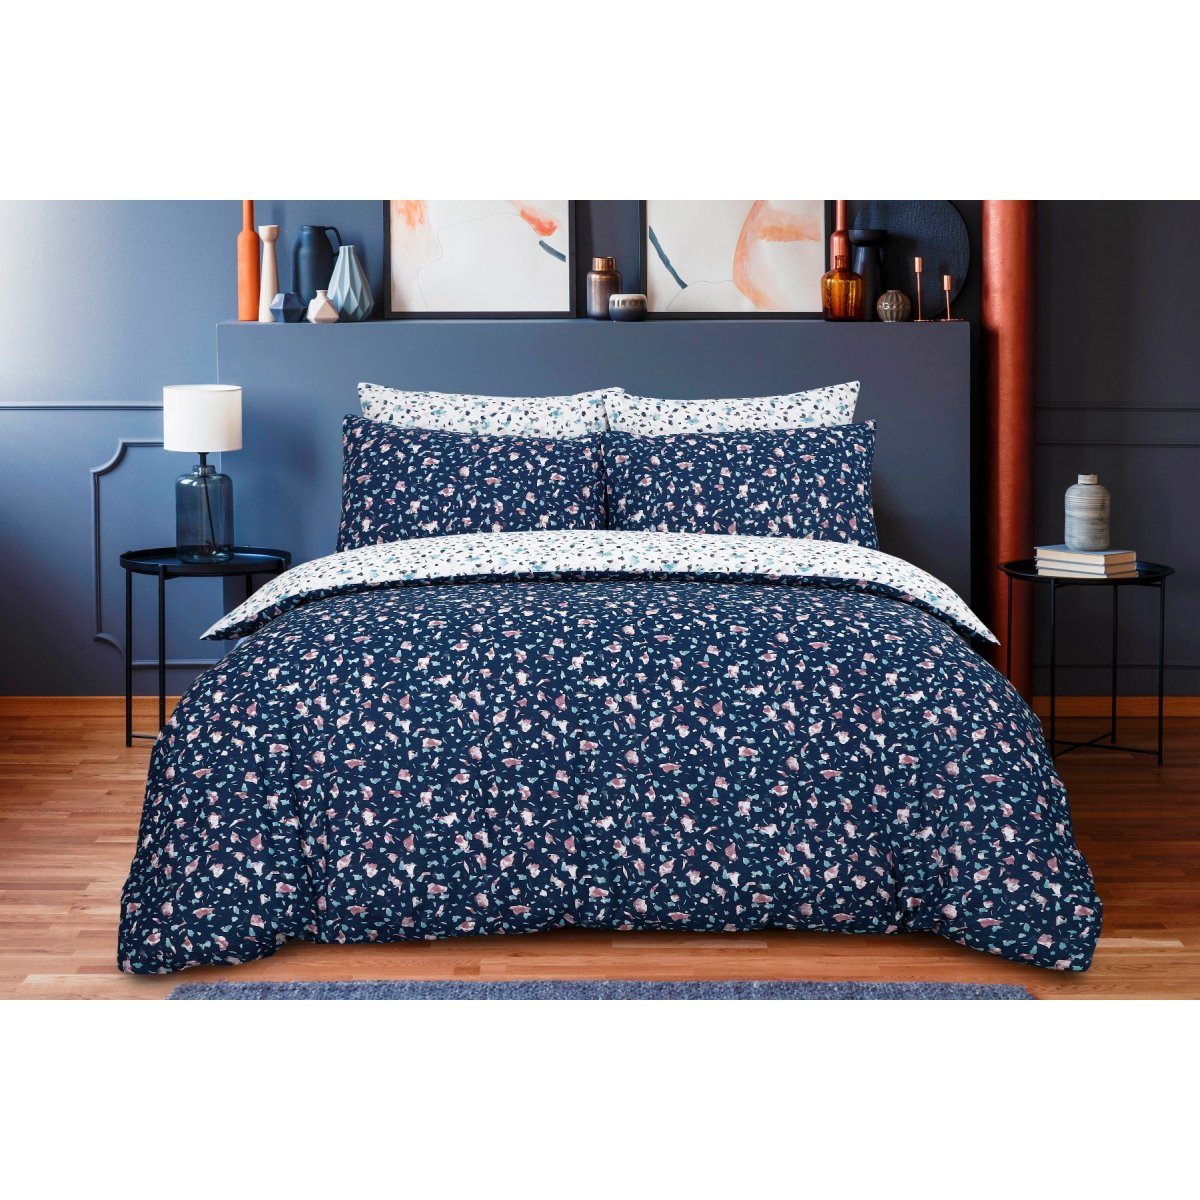 Scattered Terrazzo Navy Bedding - Reversible Duvet Cover and Pillowcase Set